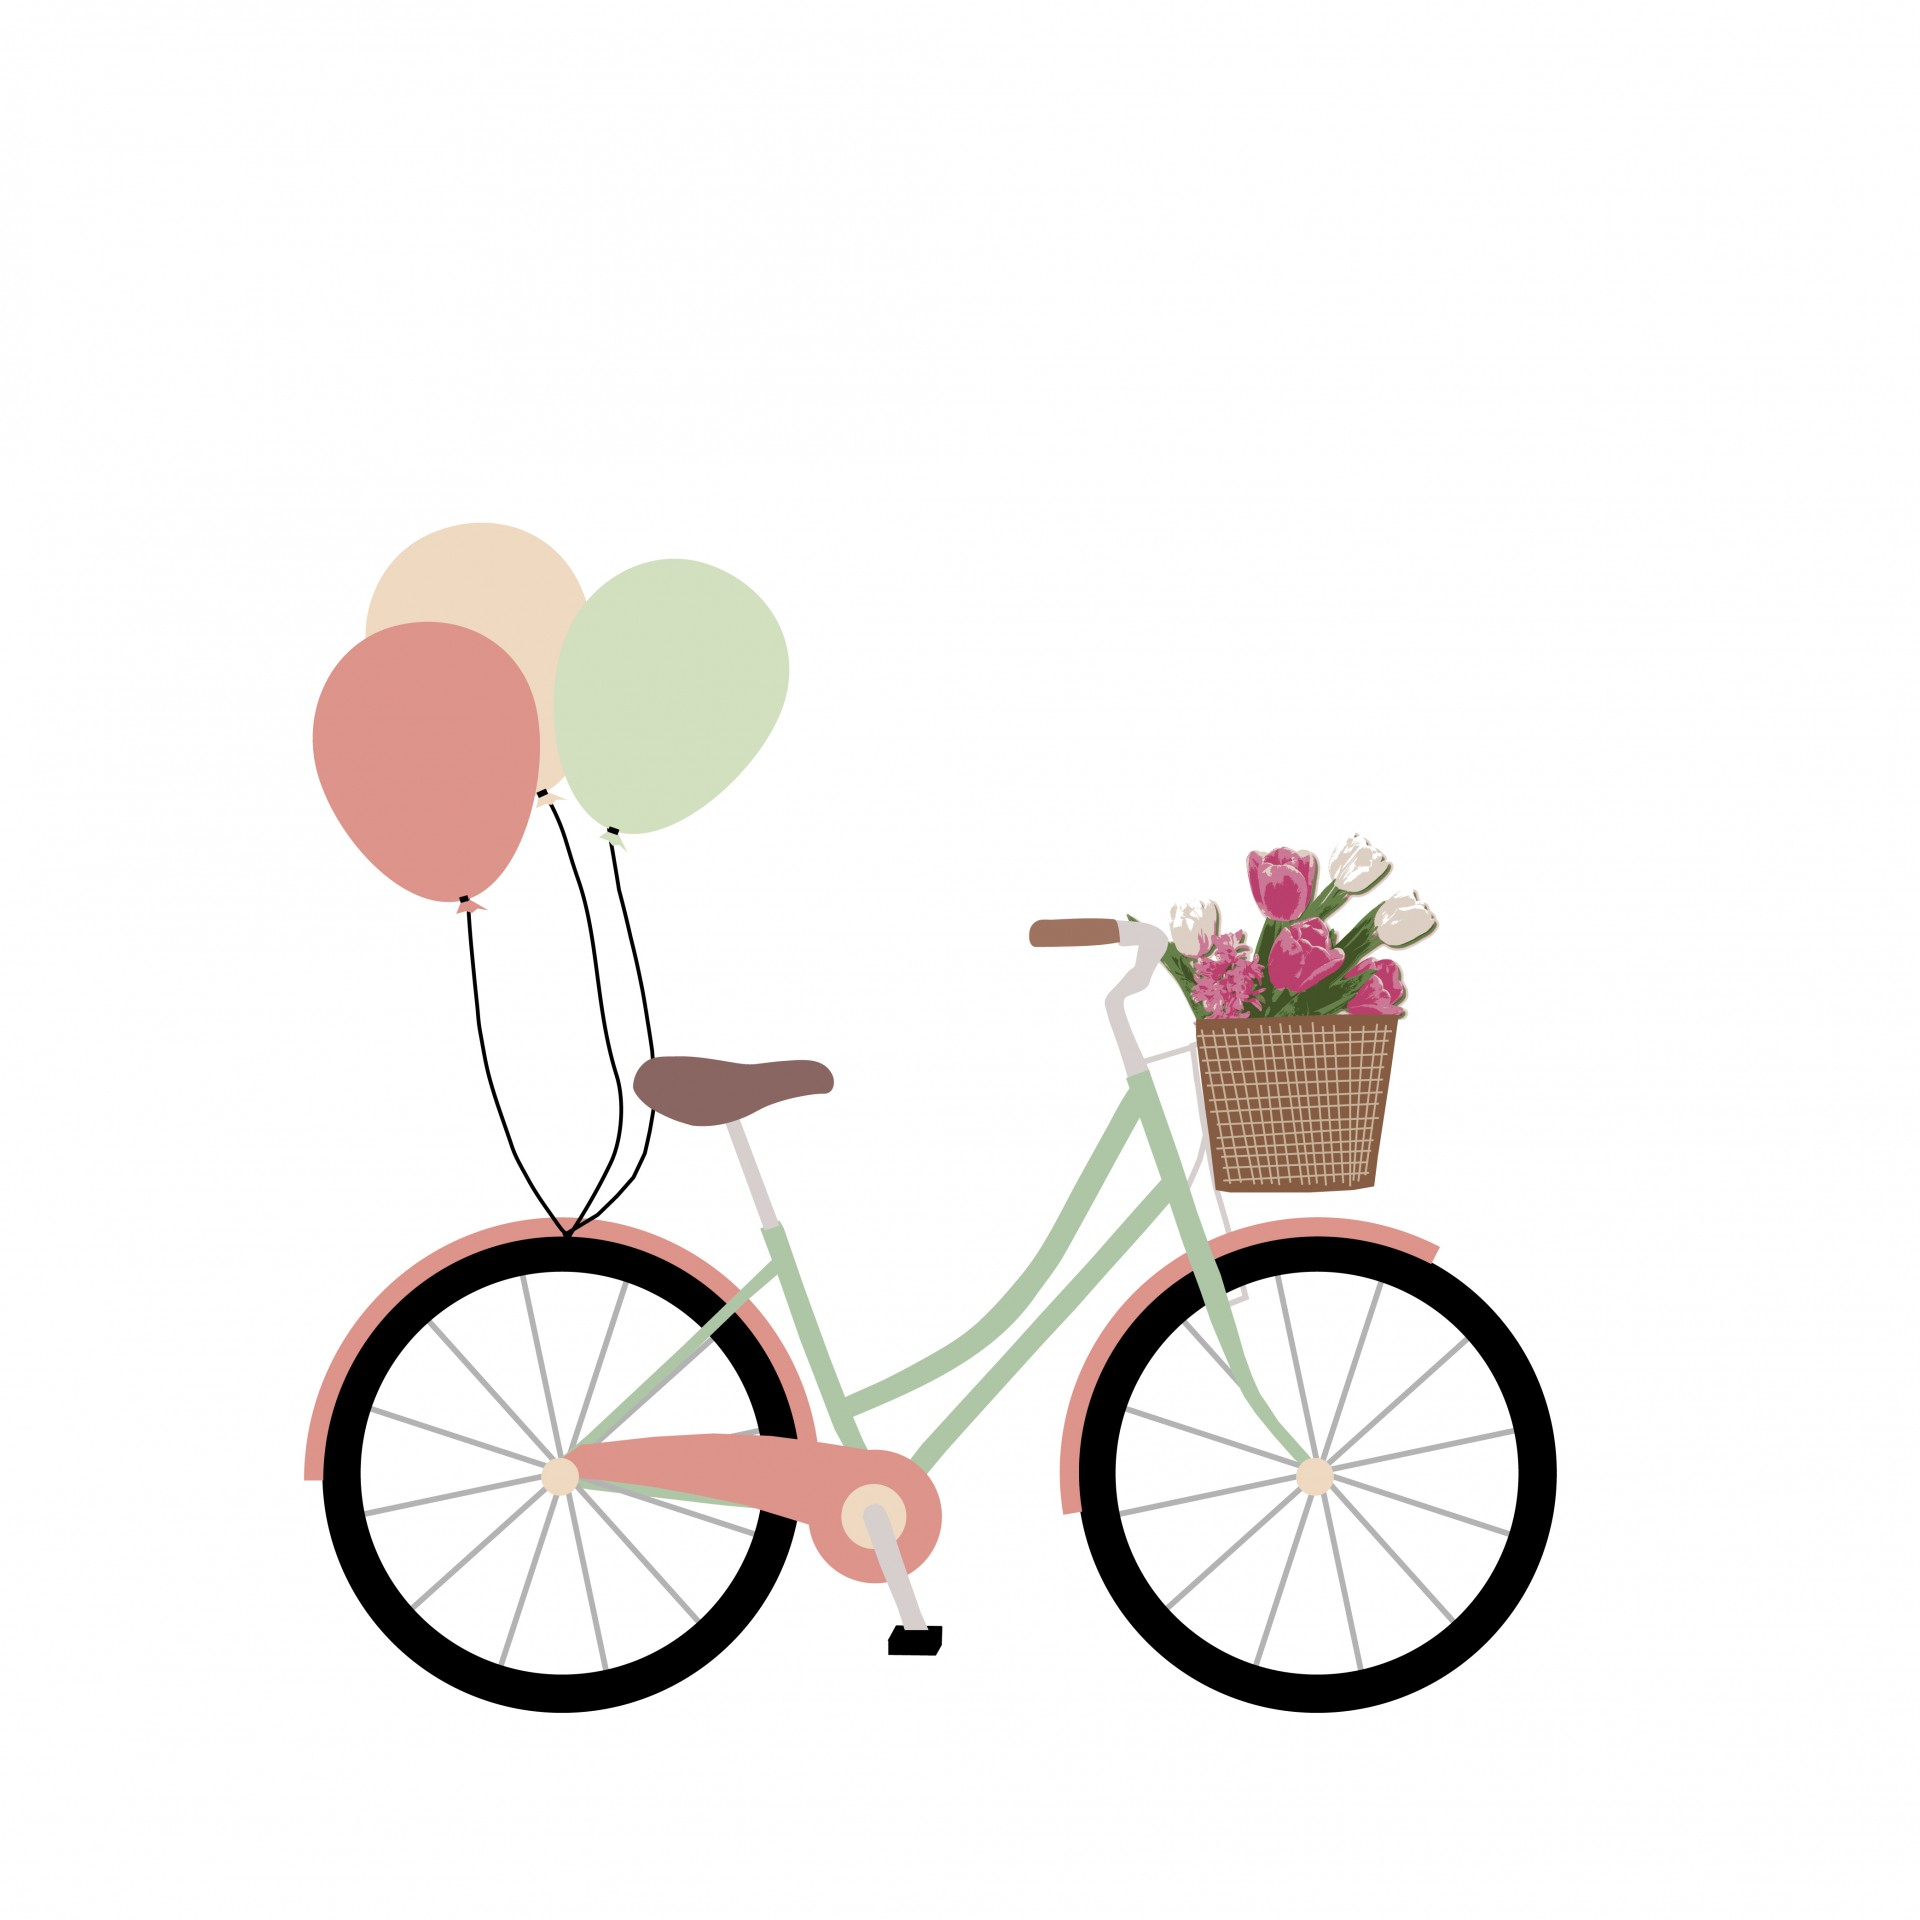 1920x1920 Bike, Bicycle With Balloons Clipart Free Stock Photo